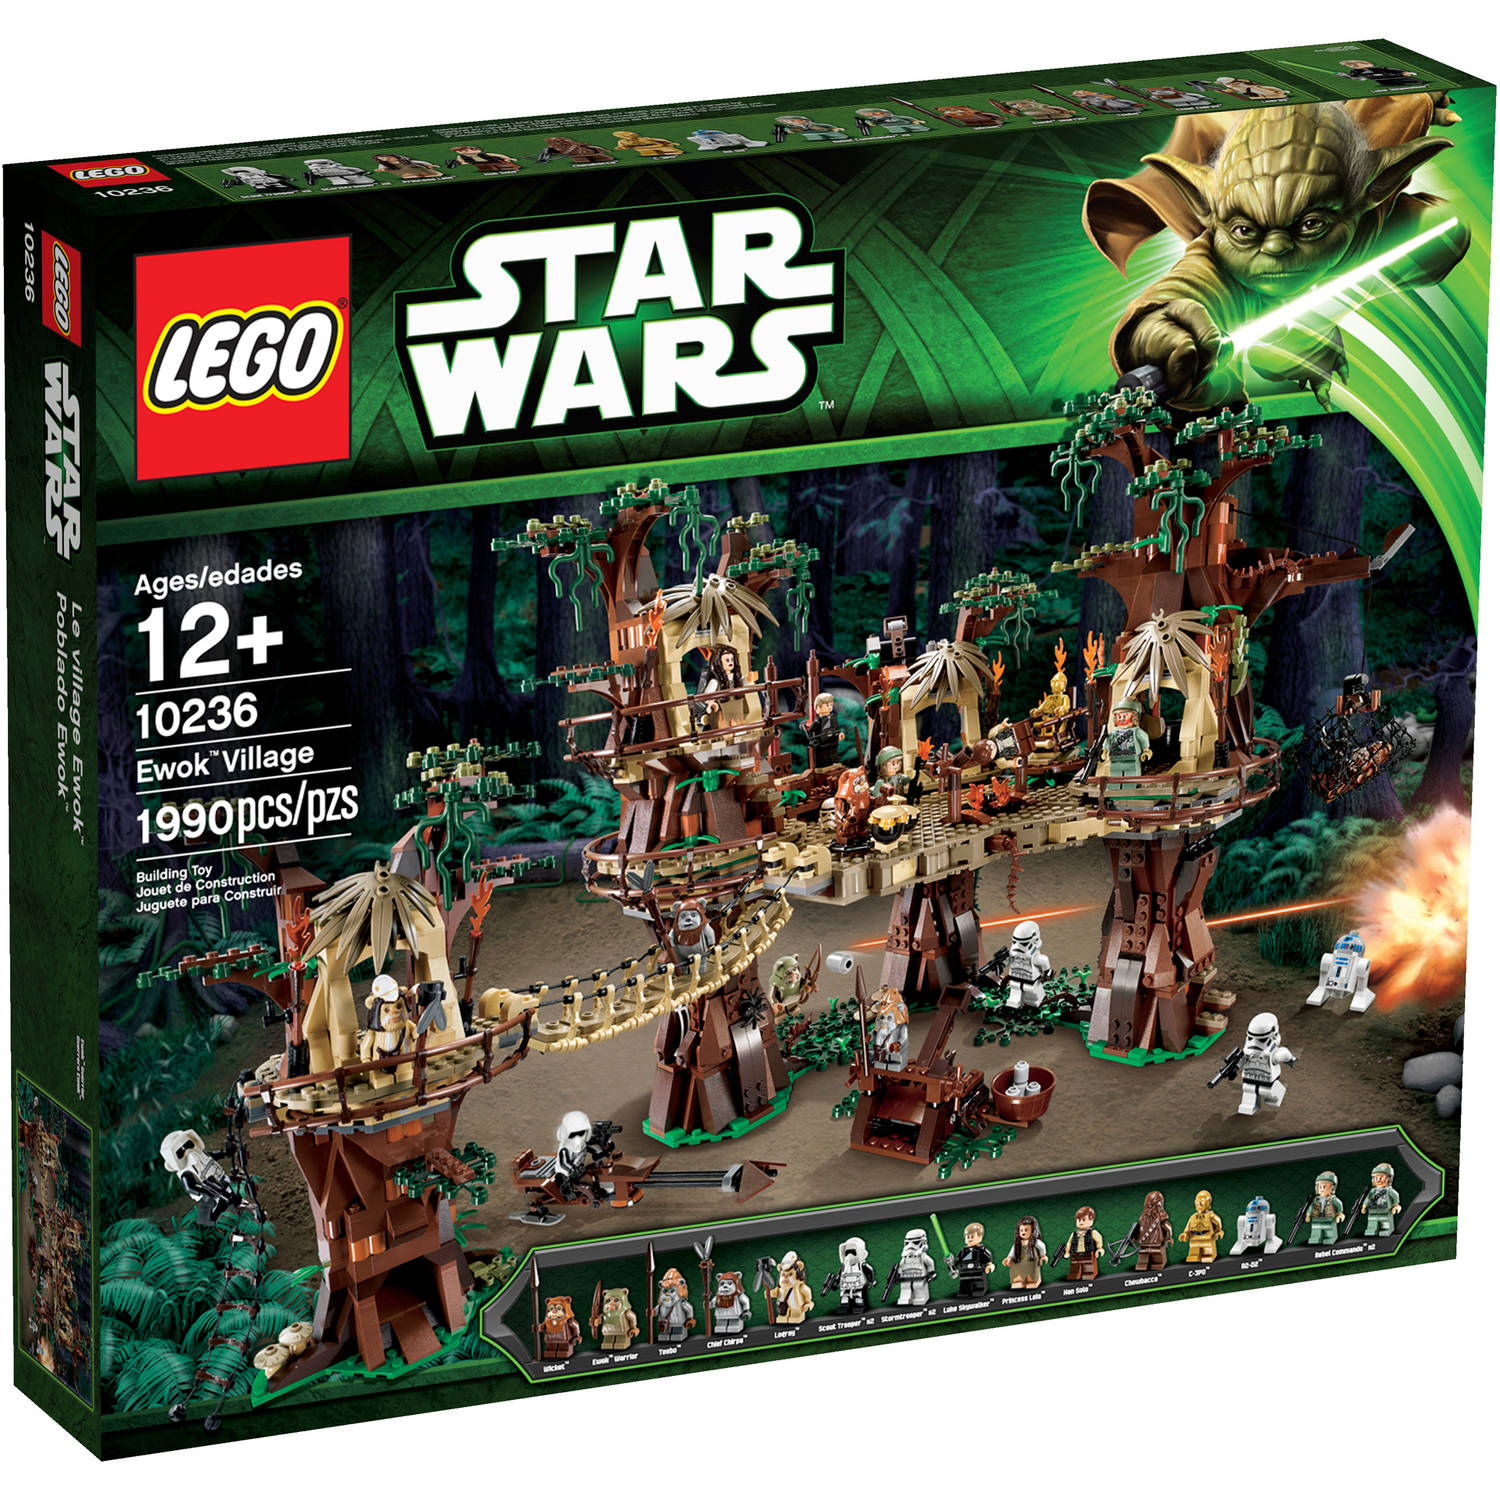 LEGO Star Wars Ewok Village Play Set - Walmart.com